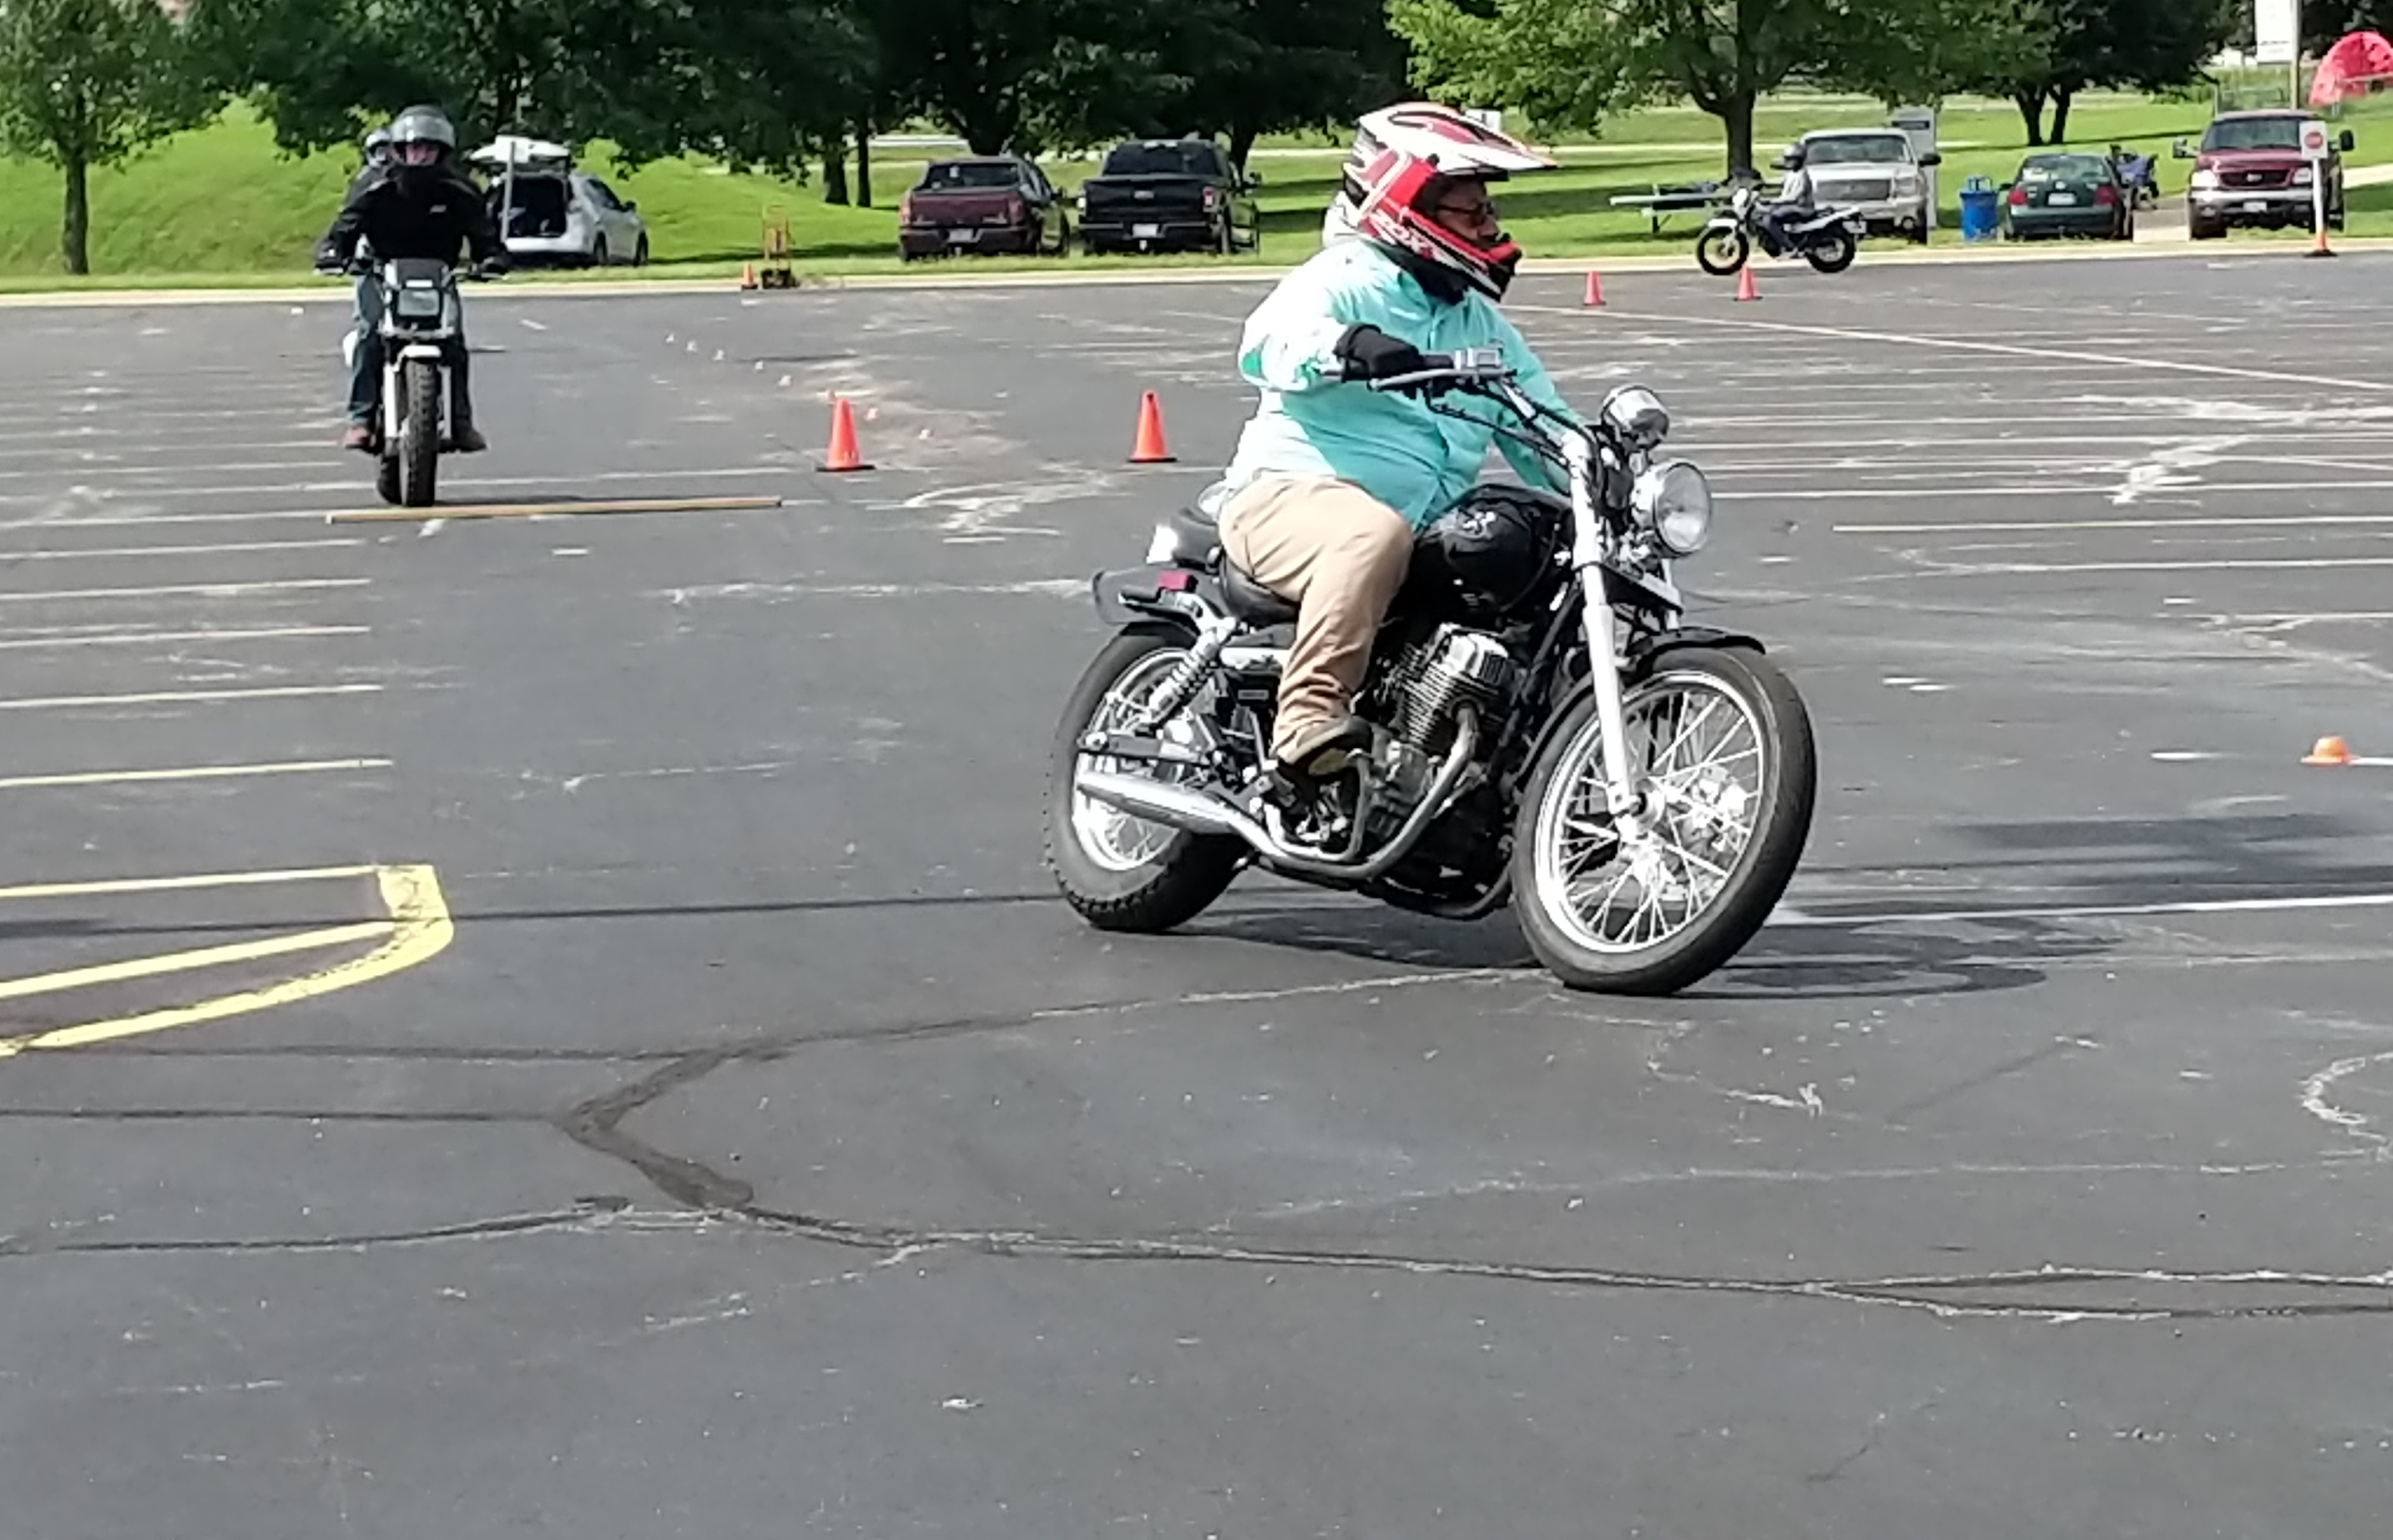 Motorcycle Rider Program in session for Fall 2019